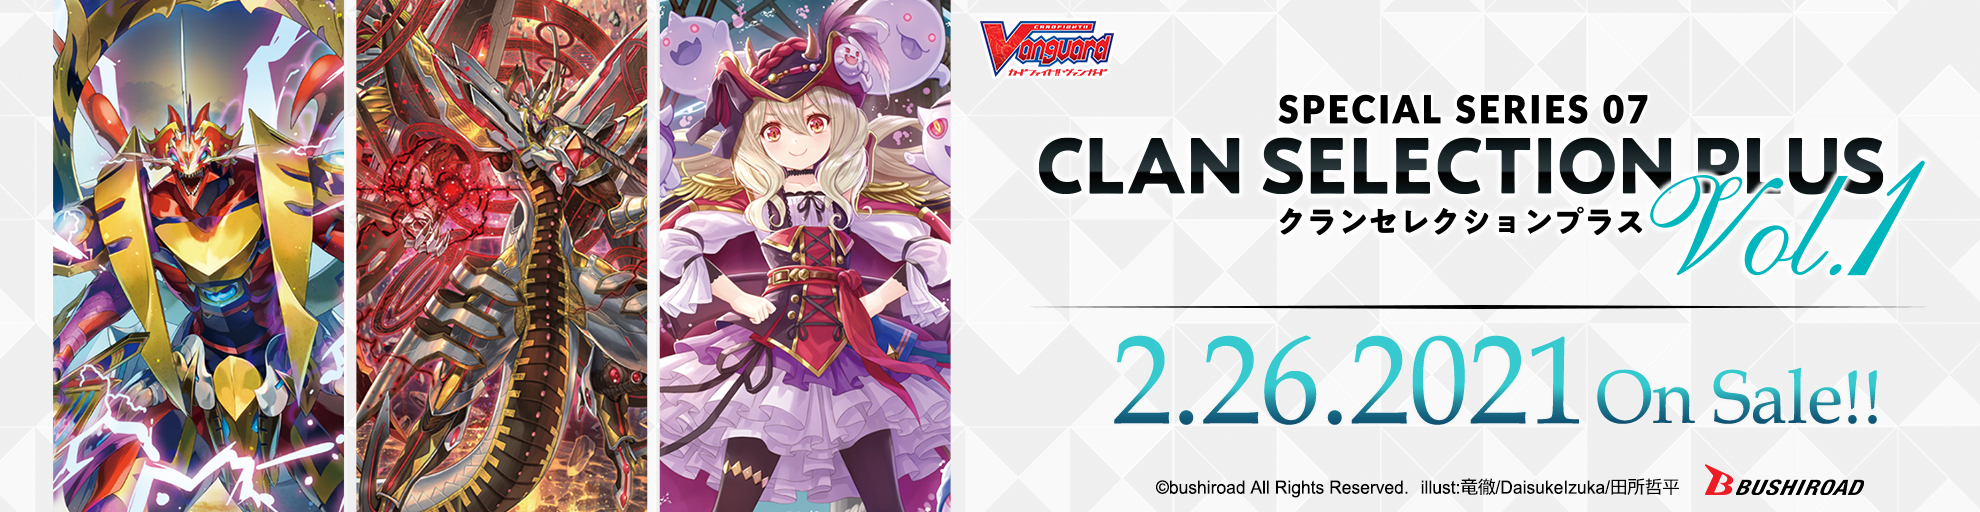 Special Series 07 Clan Selection Plus Vol.1, on sale February 26, 2021